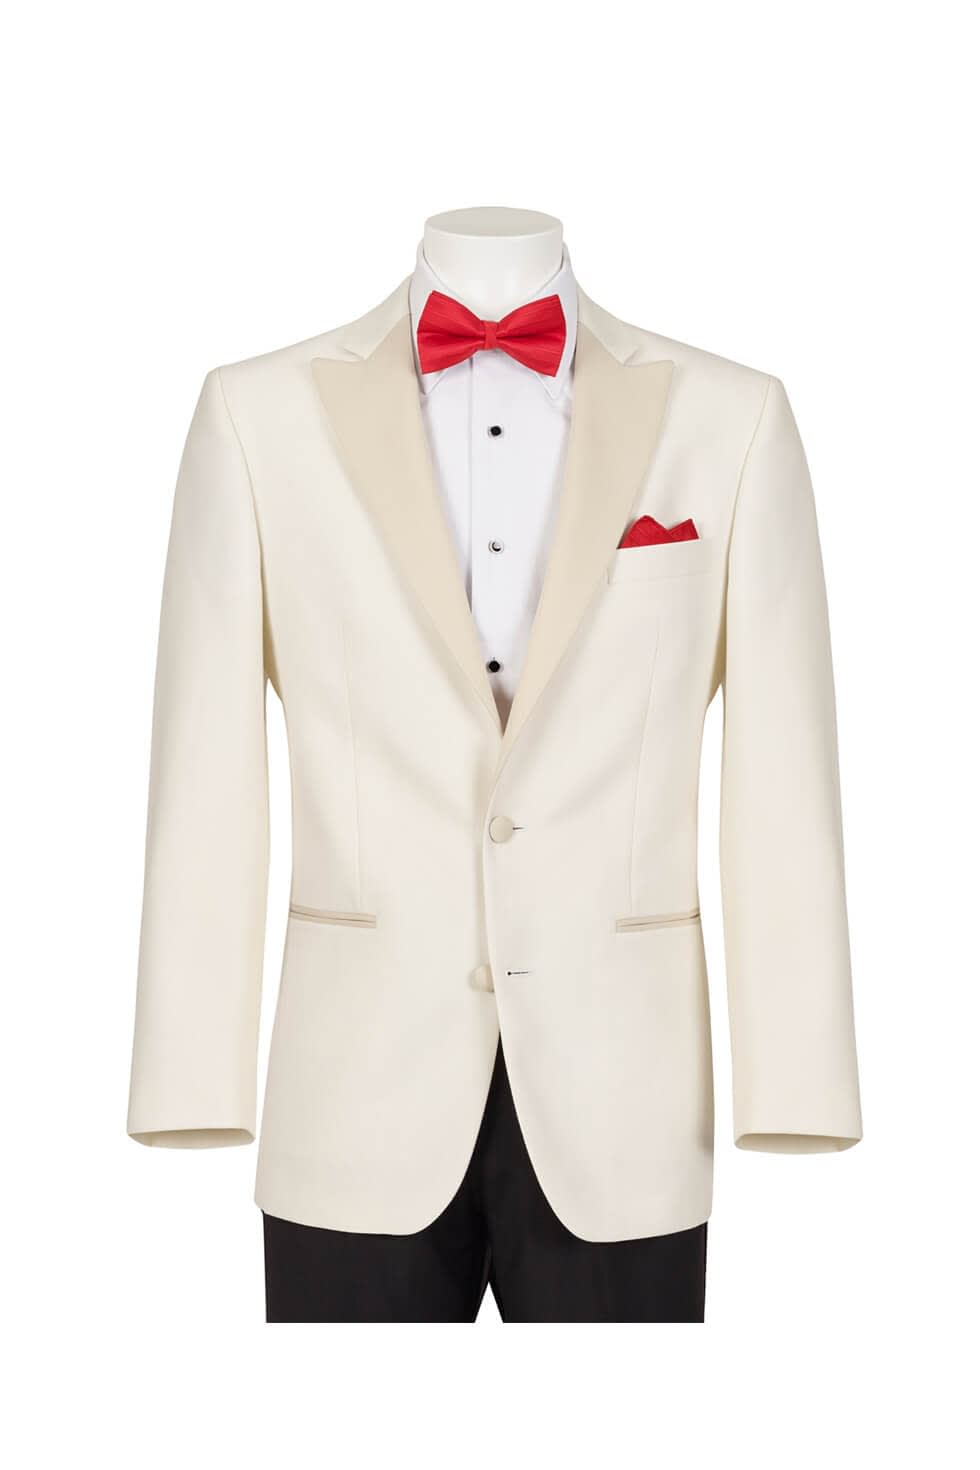 Cream Tuxedo Jacket with matching black trousers